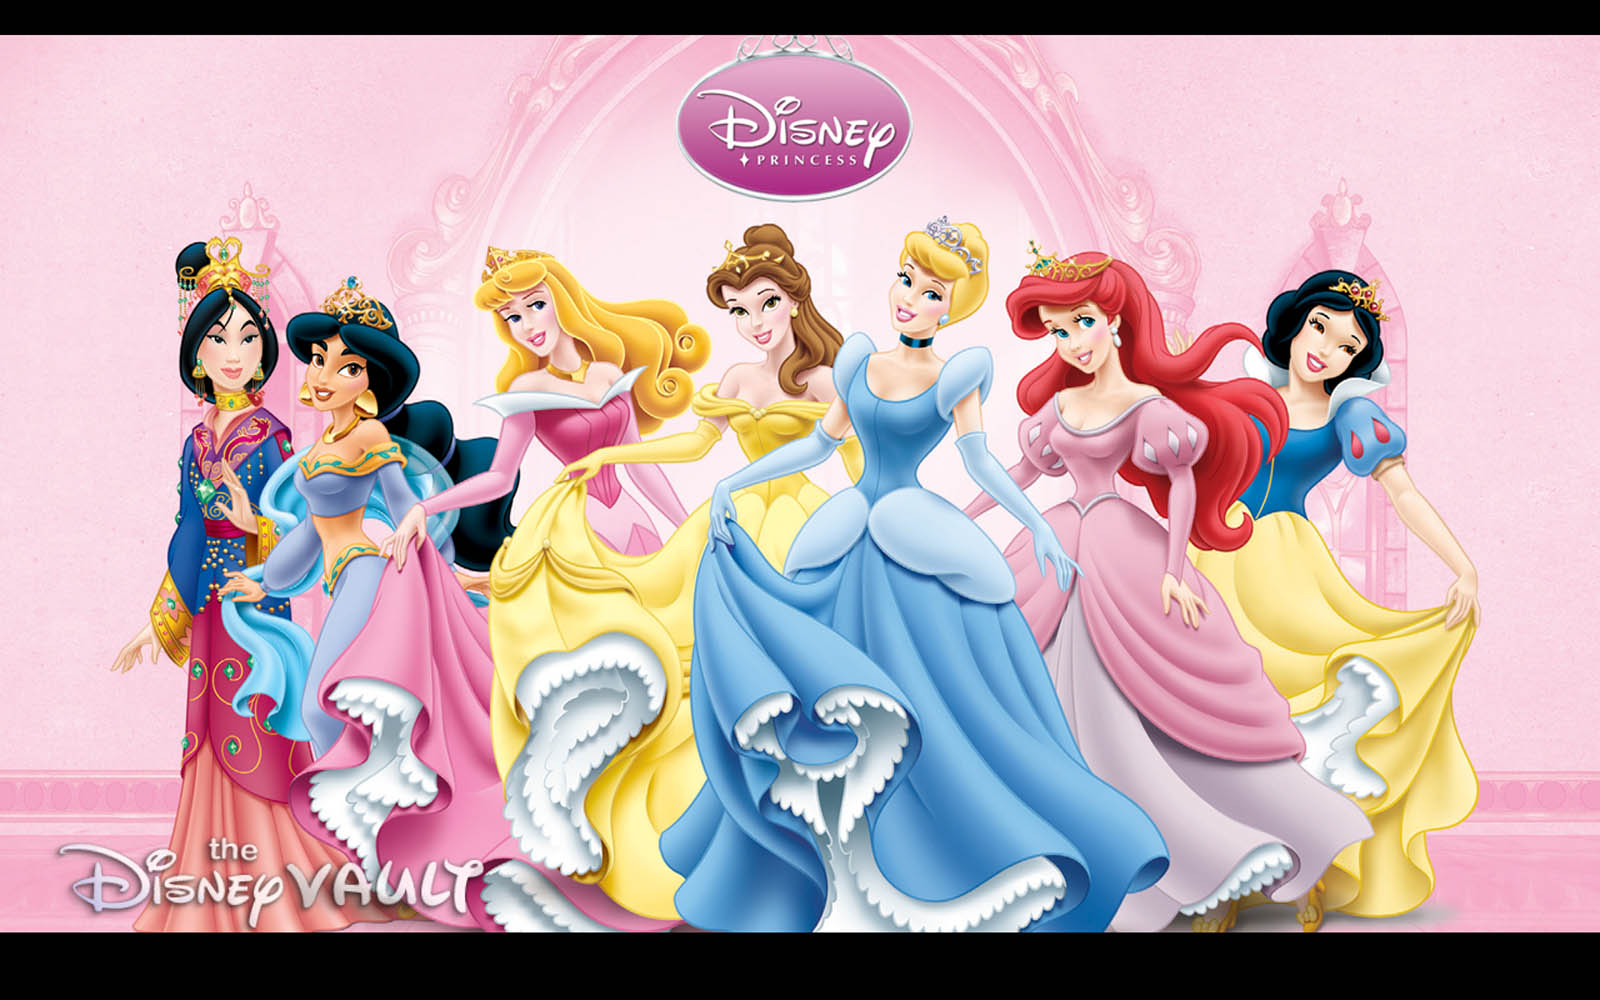 Tag Disney Princess Wallpapers BackgroundsPhotos Images and 1600x1000